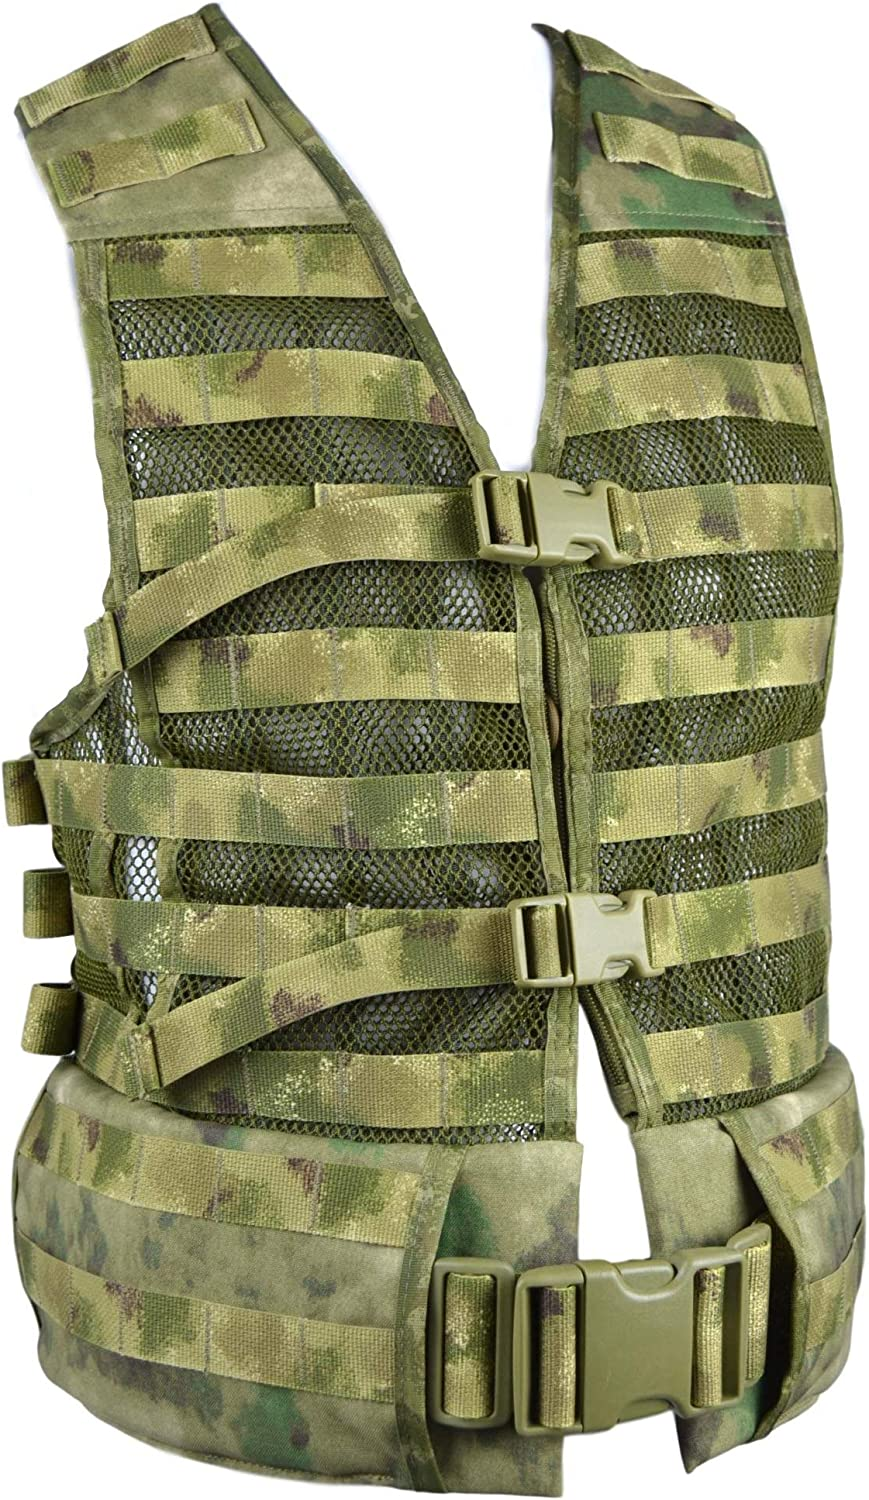 Limited time sale Techinkom Molle Assault Vest Original 6SH117 Russian Outlet sale feature Army